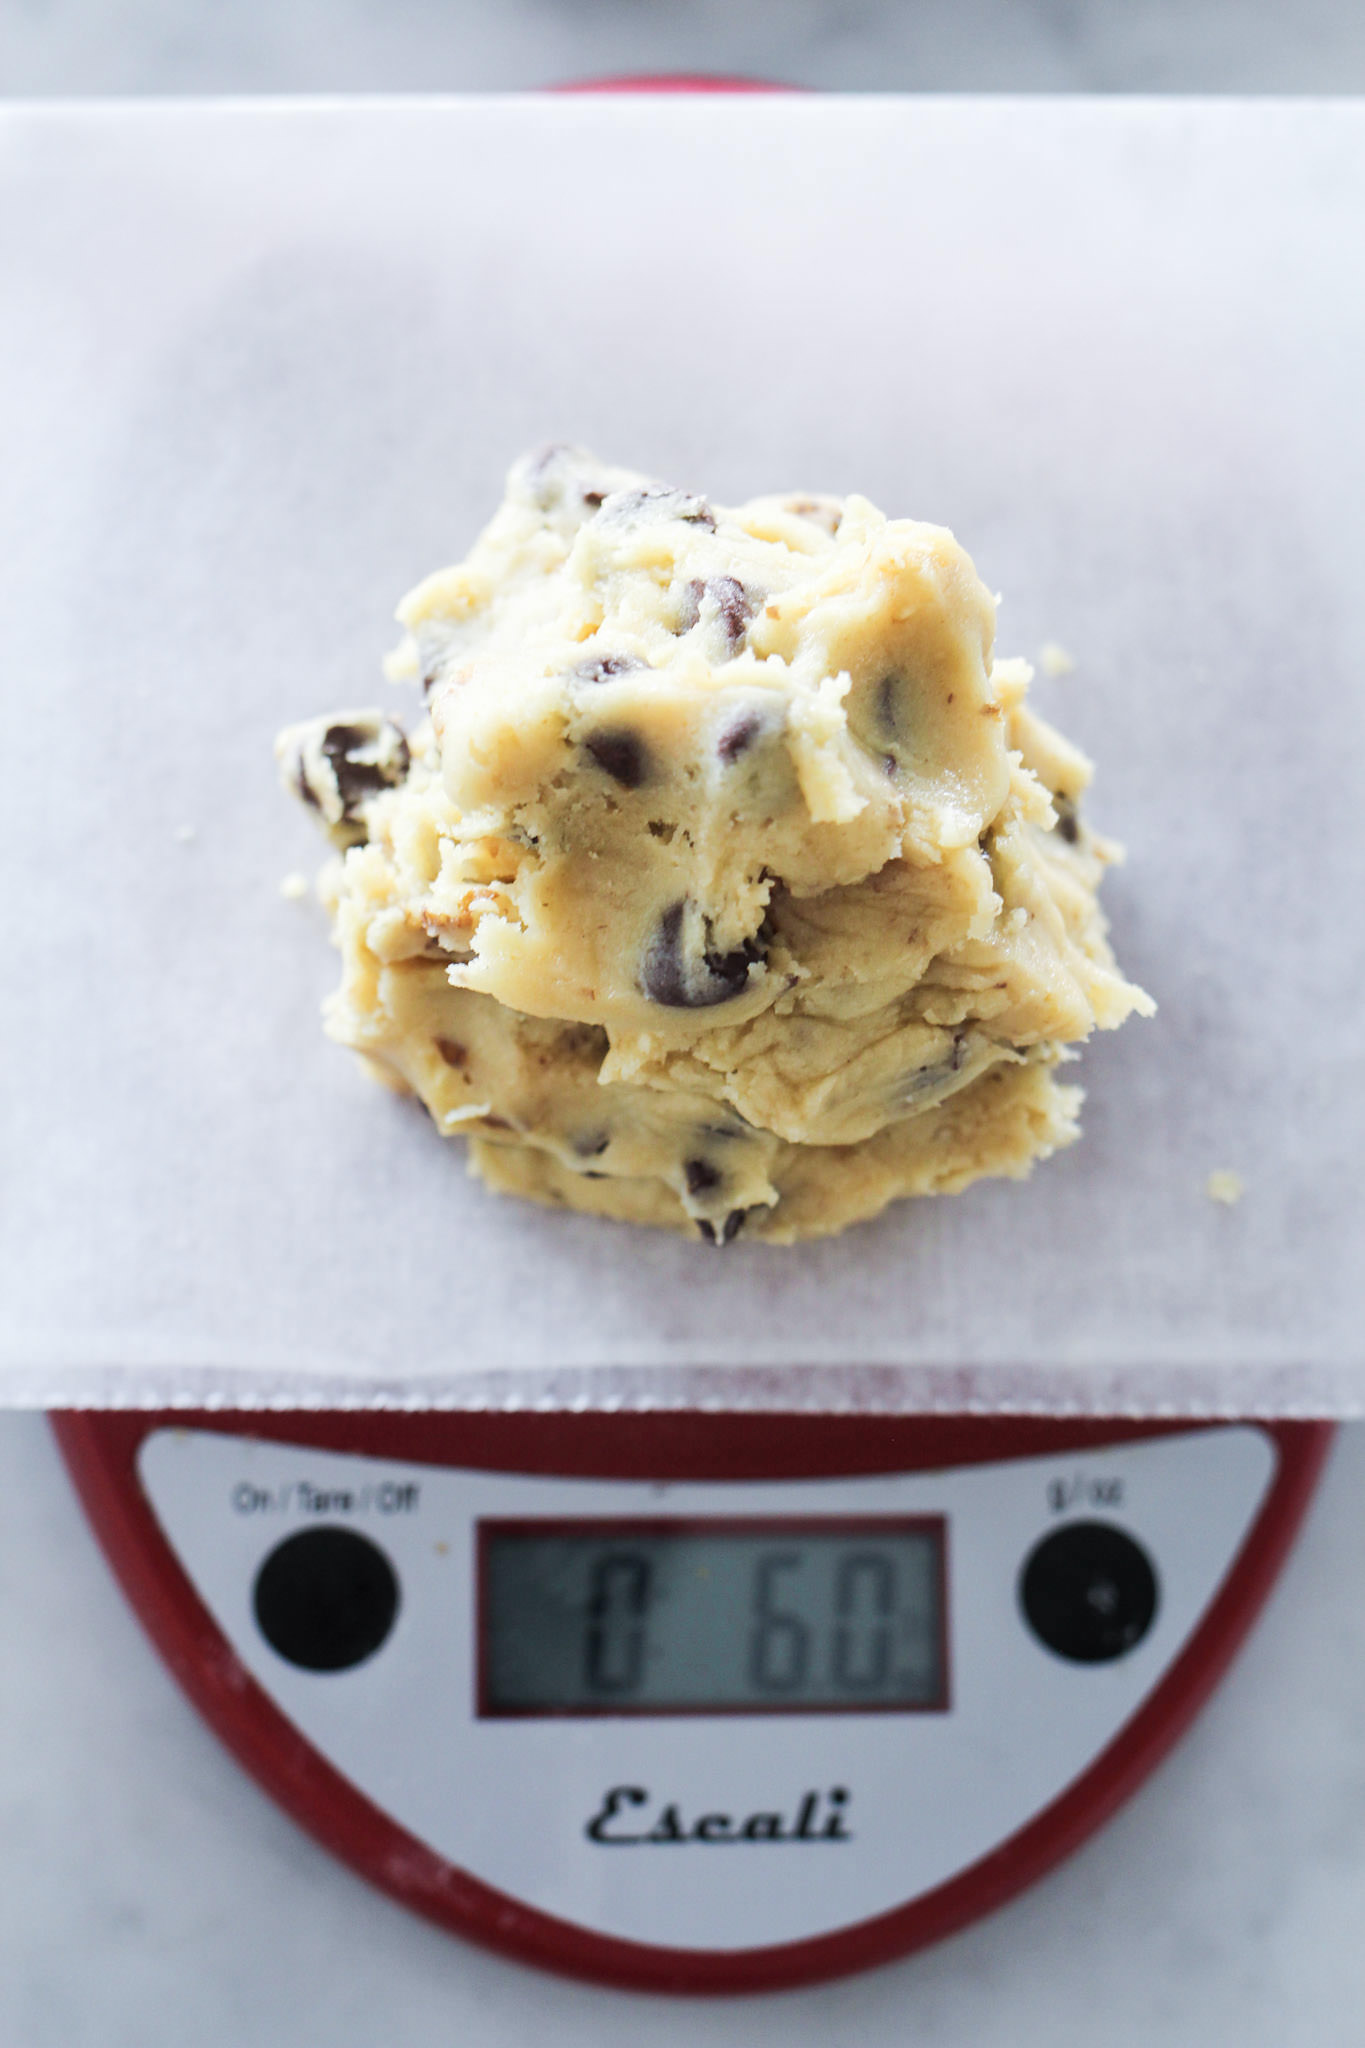 Levain Bakery Chocolate Chip Cookie Dough on Scale